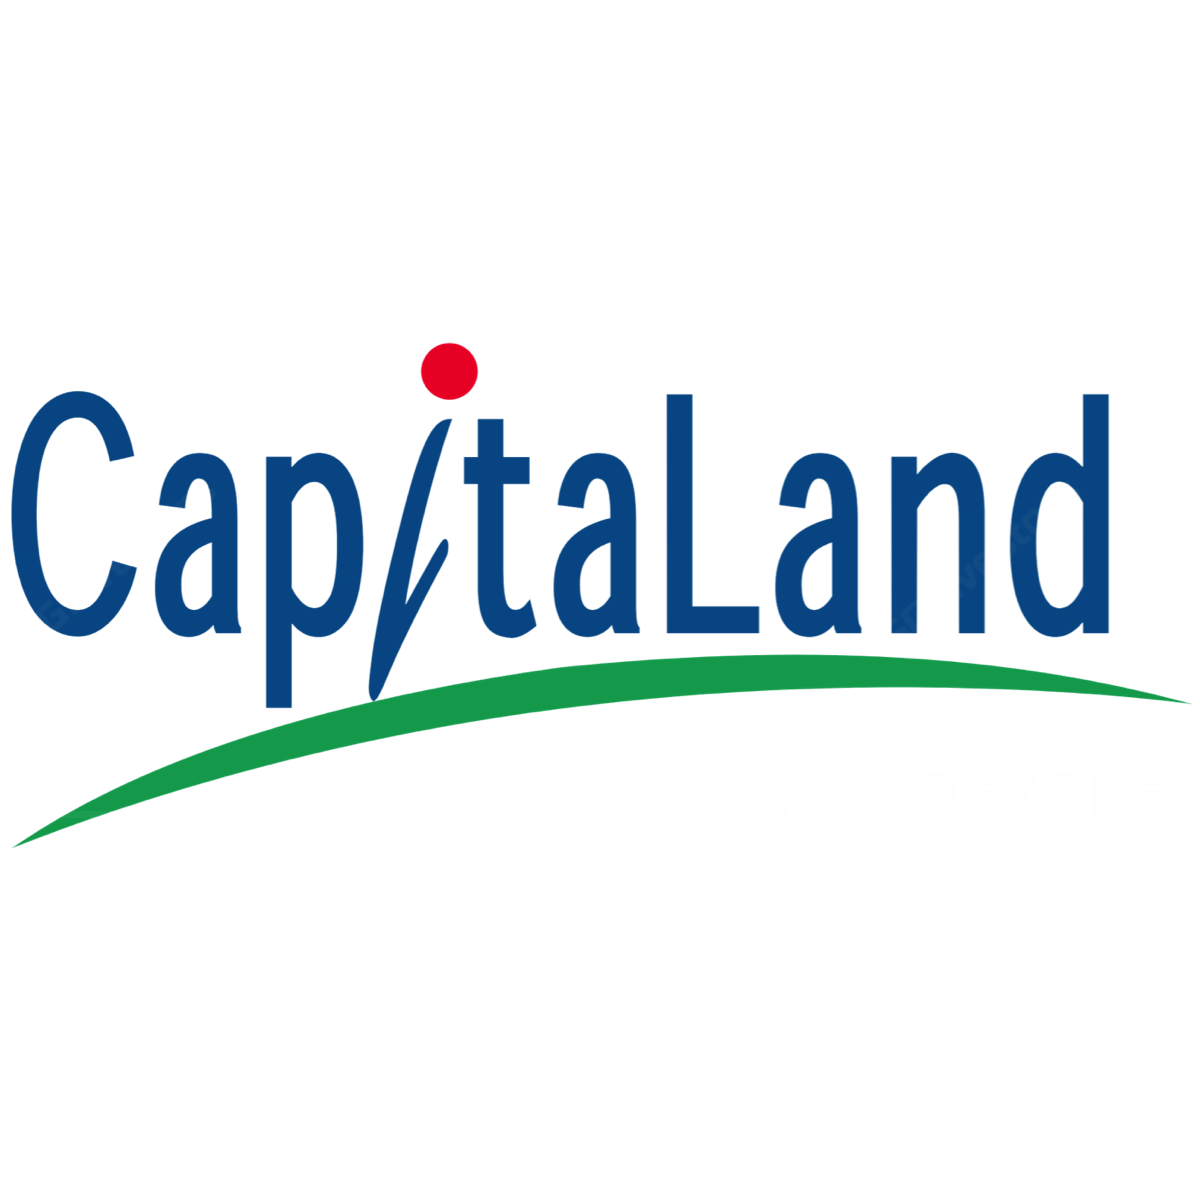 CapitaLand - DBS Vickers 2017-08-16: Rising Prospects Of Higher Dividends